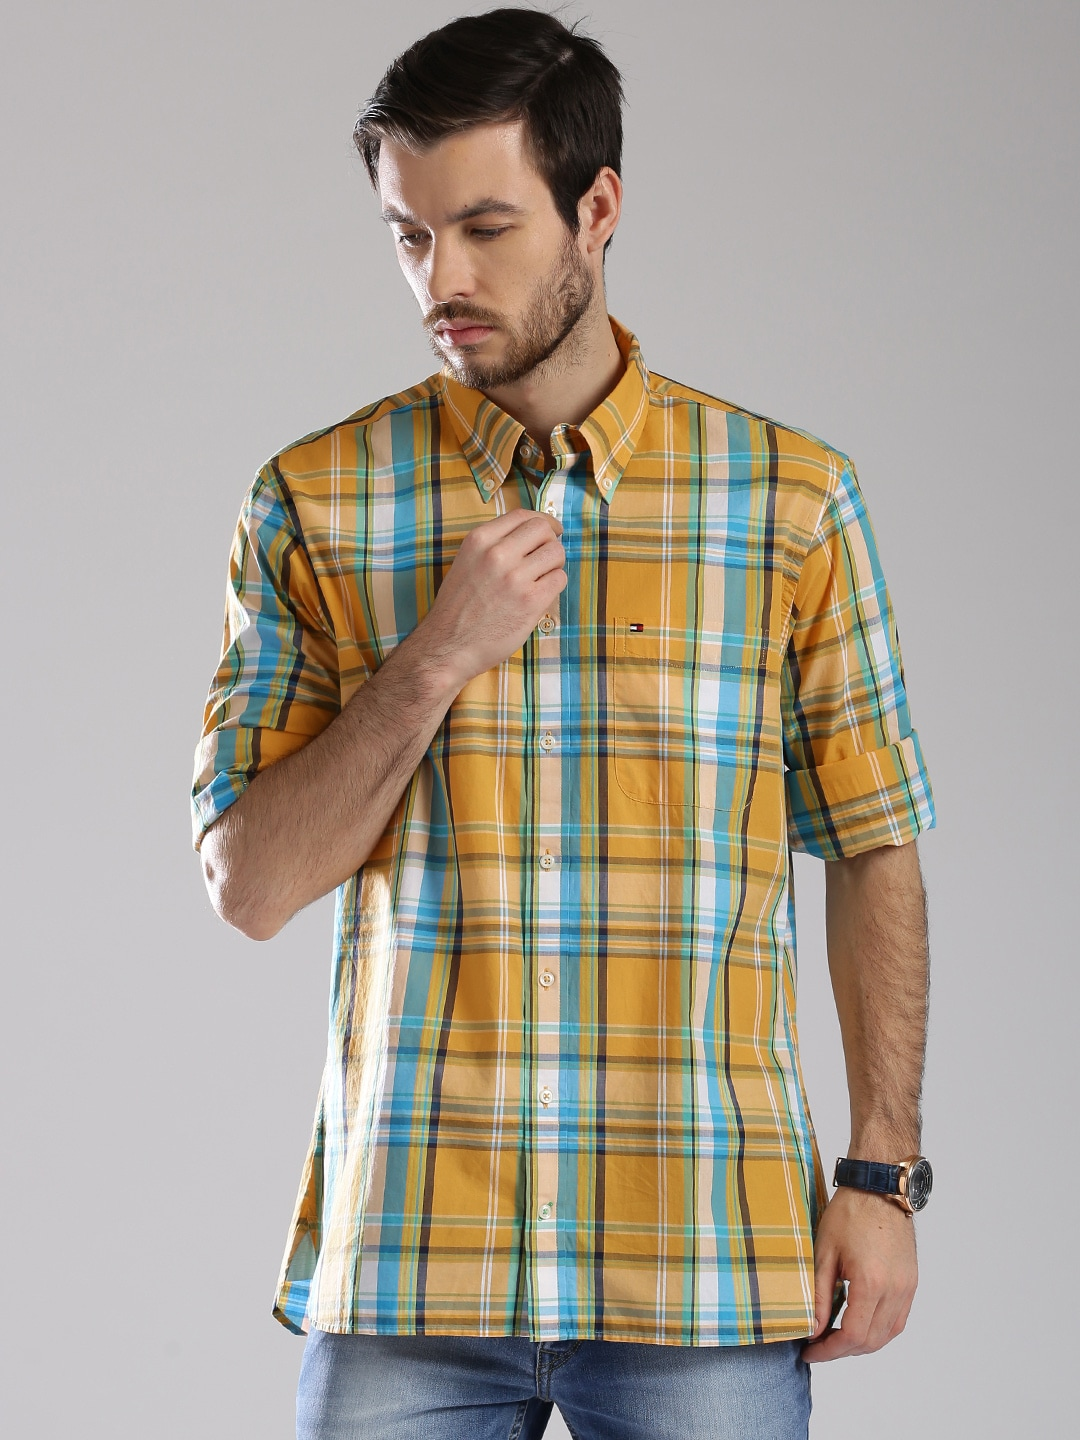 c09e4ff5 Tommy Hilfiger Casual Shirts Online India – EDGE Engineering and ...